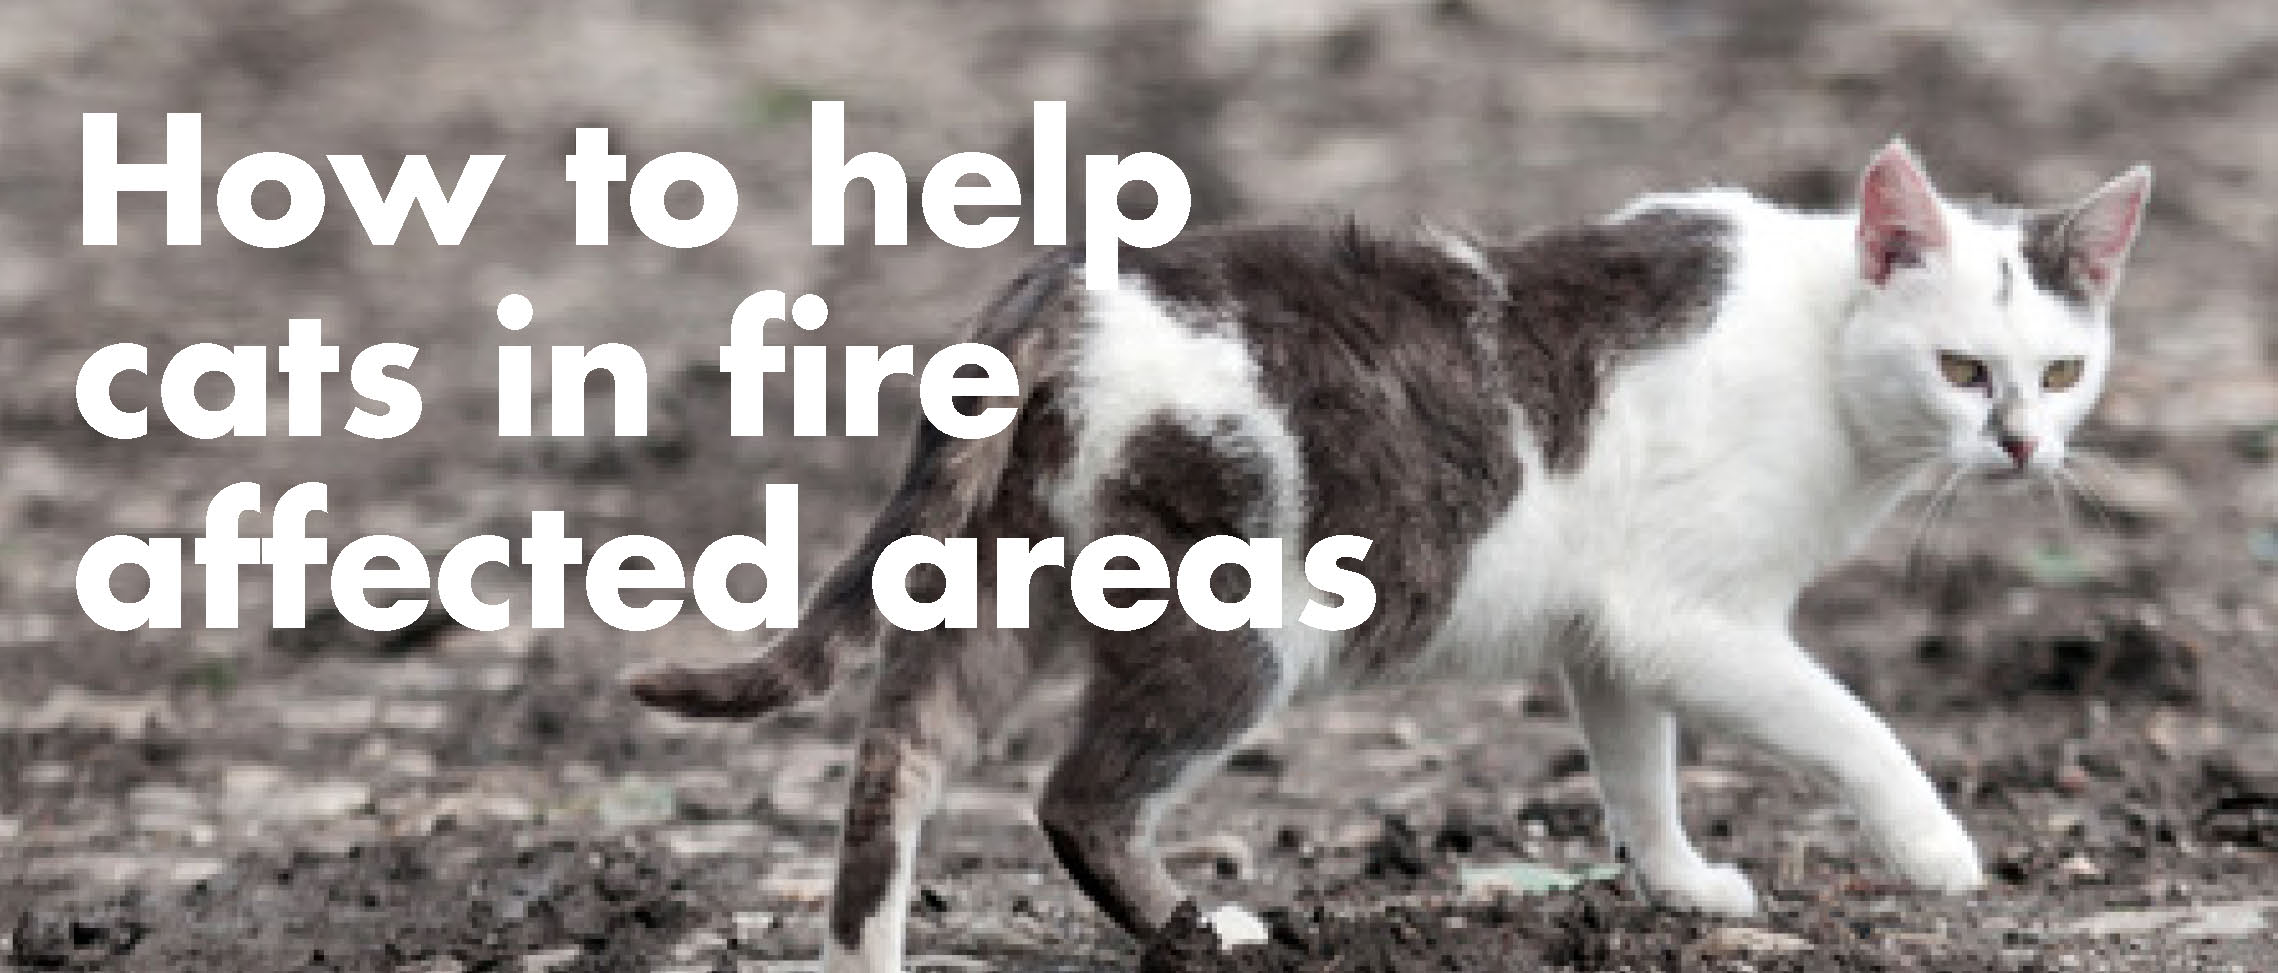 How to help cats within the fire area